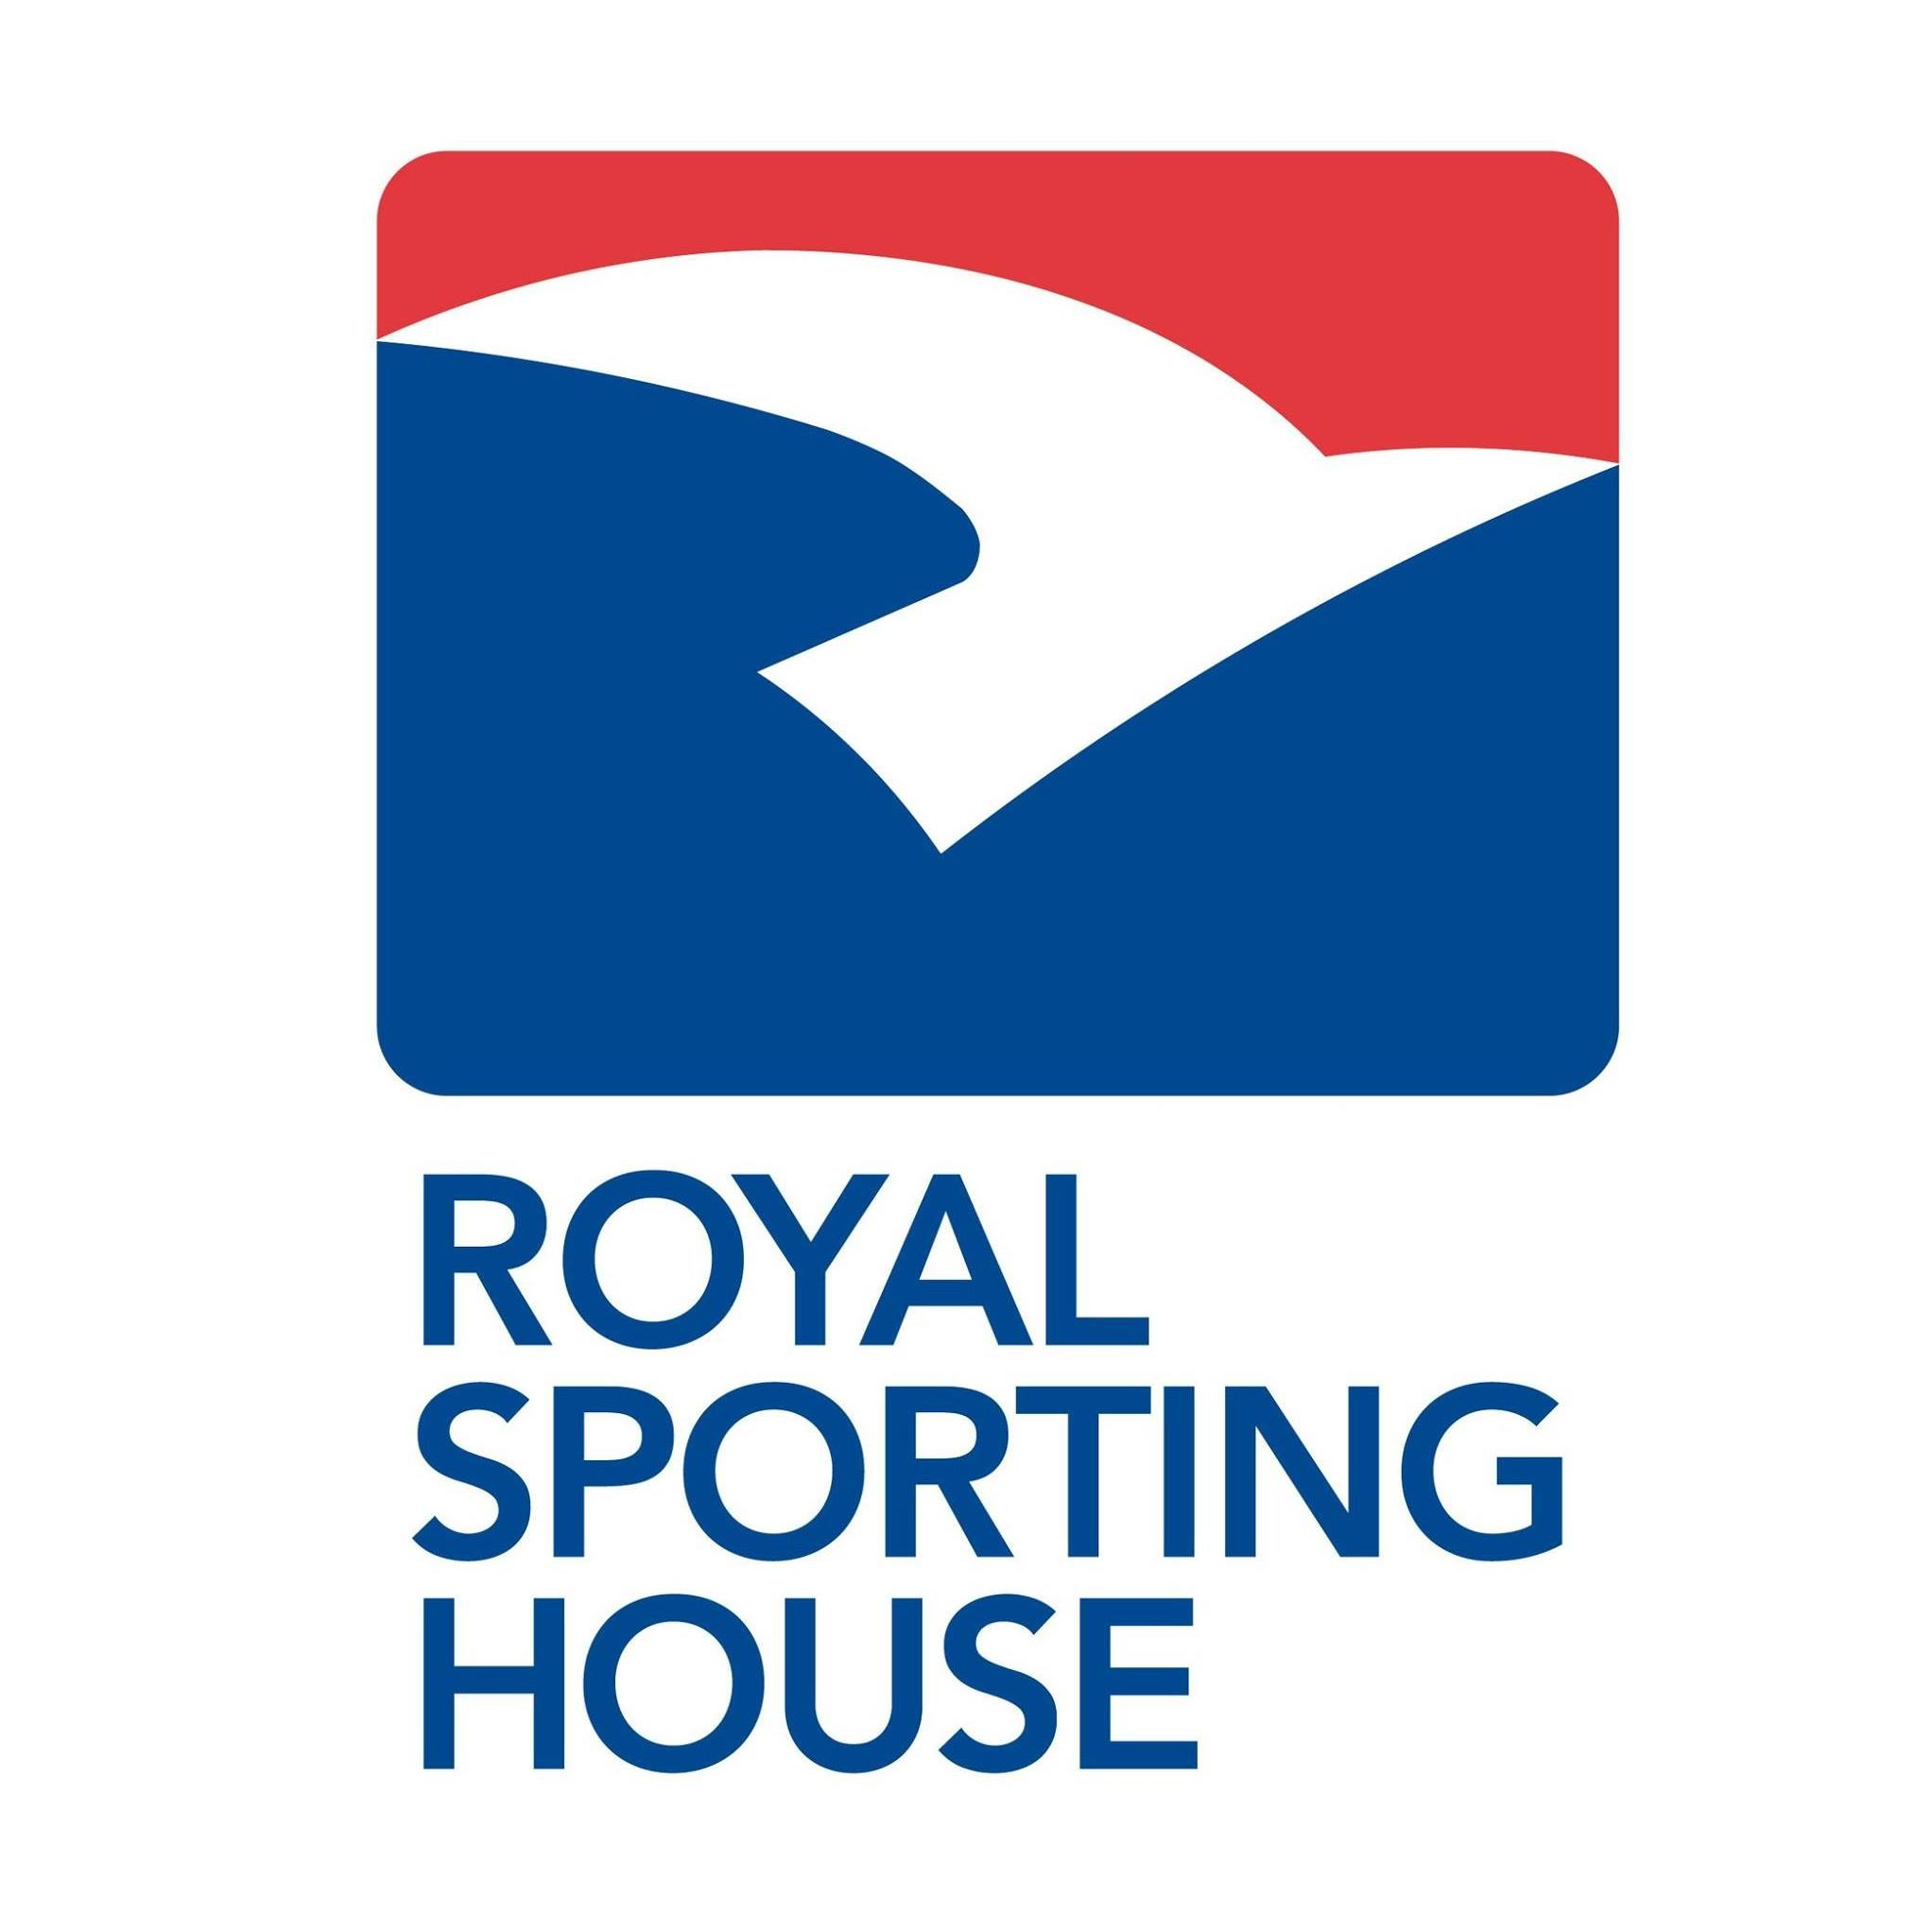 Royal Sporting House | Why Not Deals & Promotions